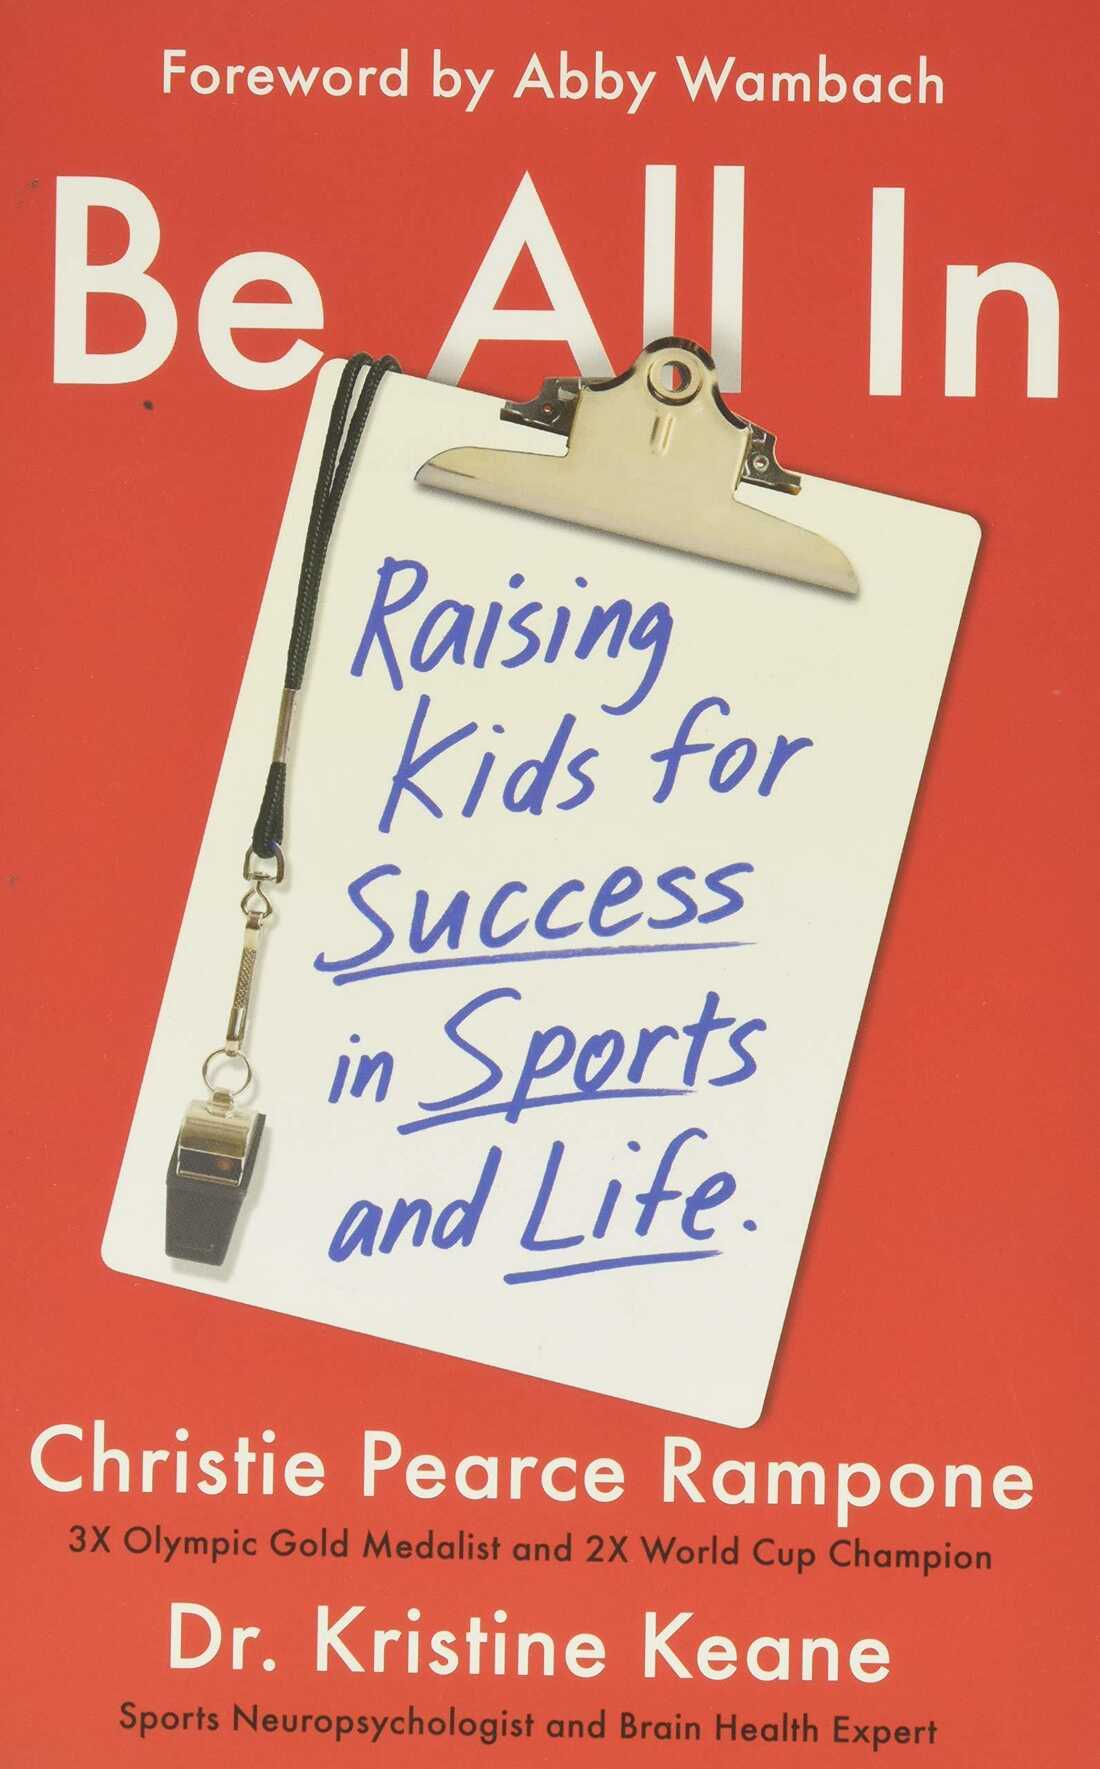 Be All In, by Christie Pearce Rampone and Dr. Kristine Keane